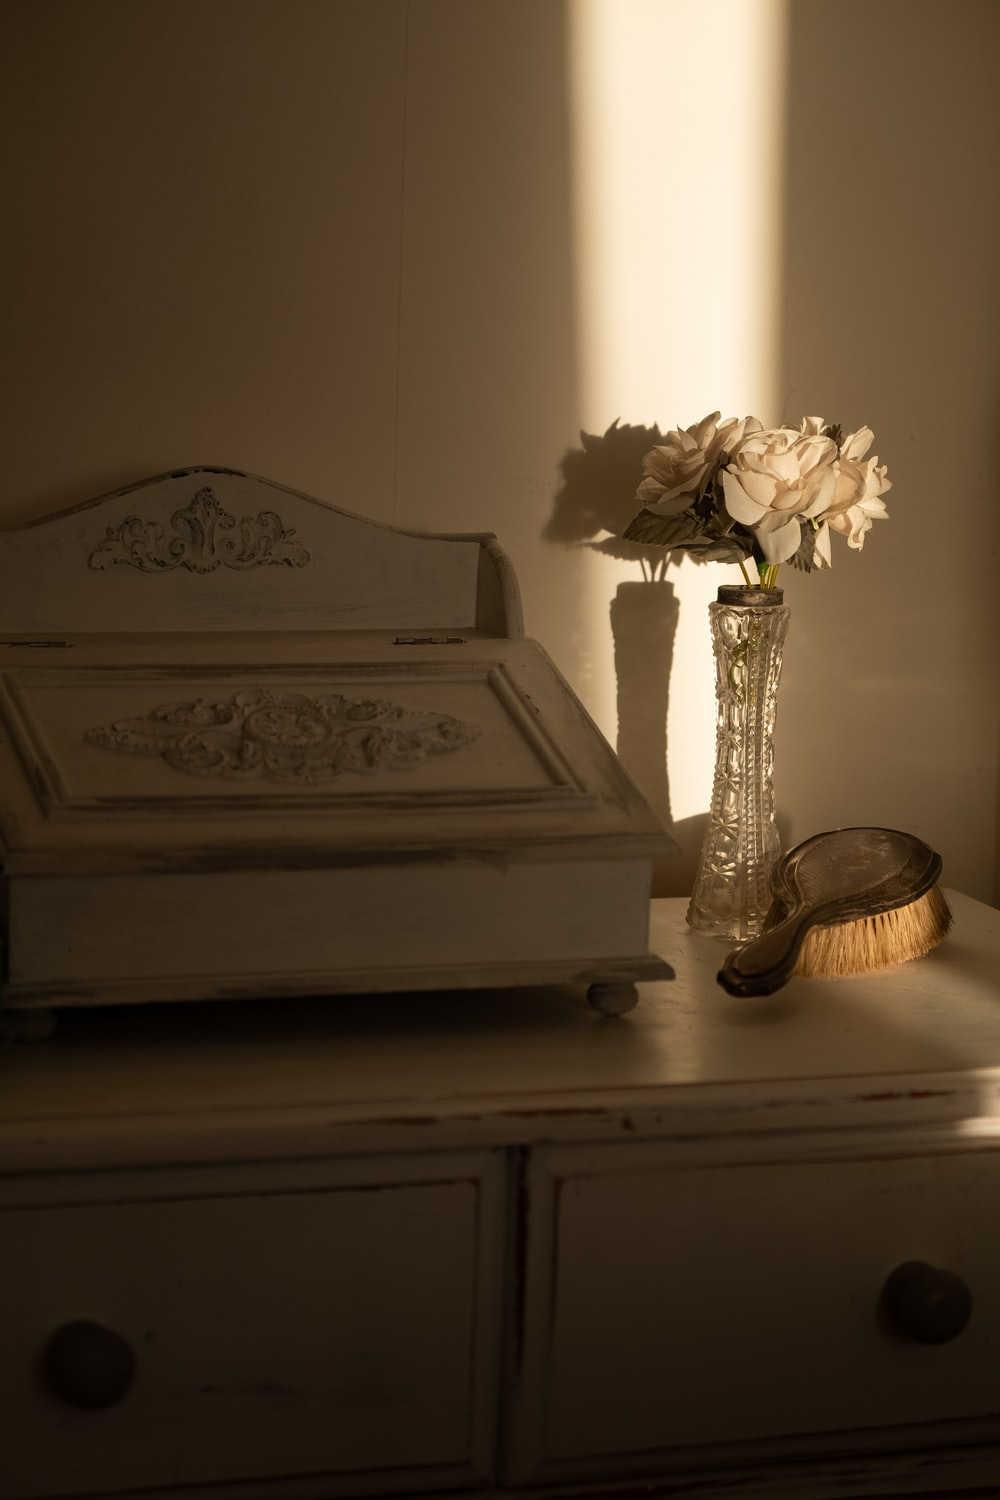 white floral table lamp on brown wooden table